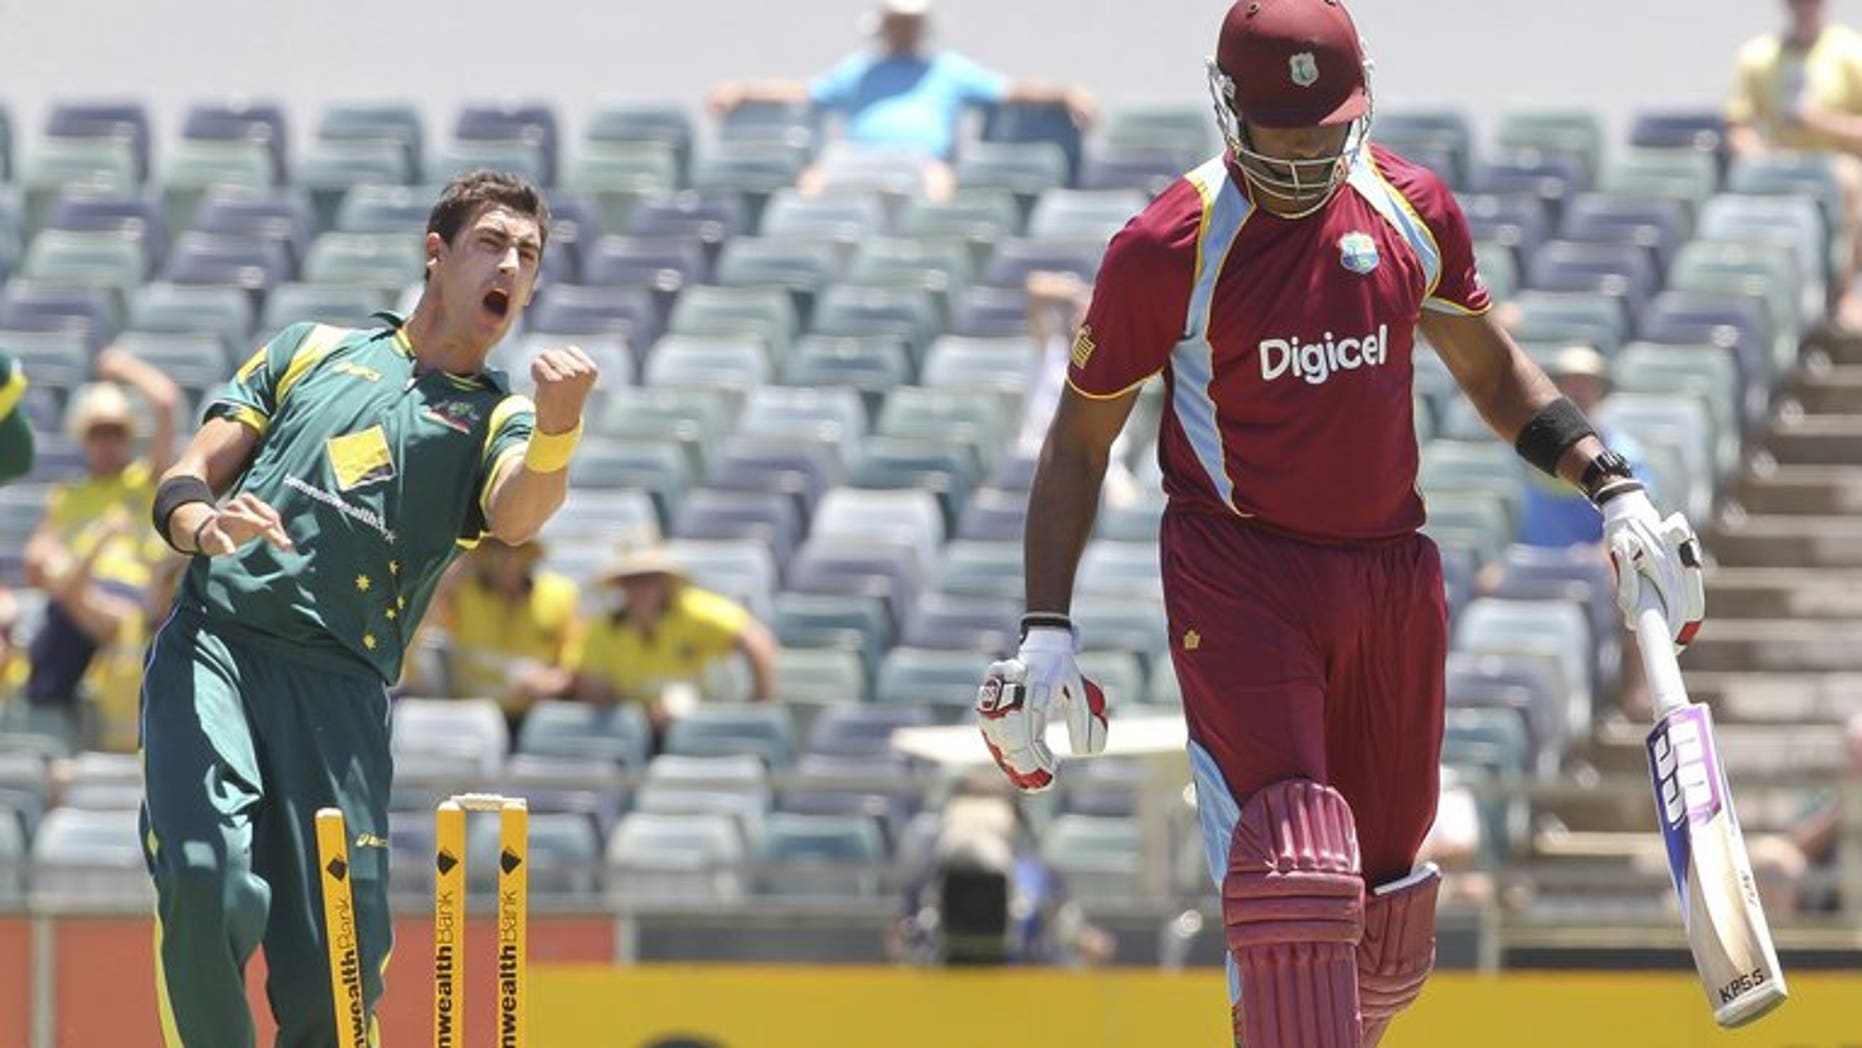 Australia's Mitchell Starc (L) celebrates during an ODI against the West Indies at the WACA ground on February 1, 2013. Perth's WACA ground will be without a Test match when India tour Australia during the 2014-15 season, Cricket Australia has announced.